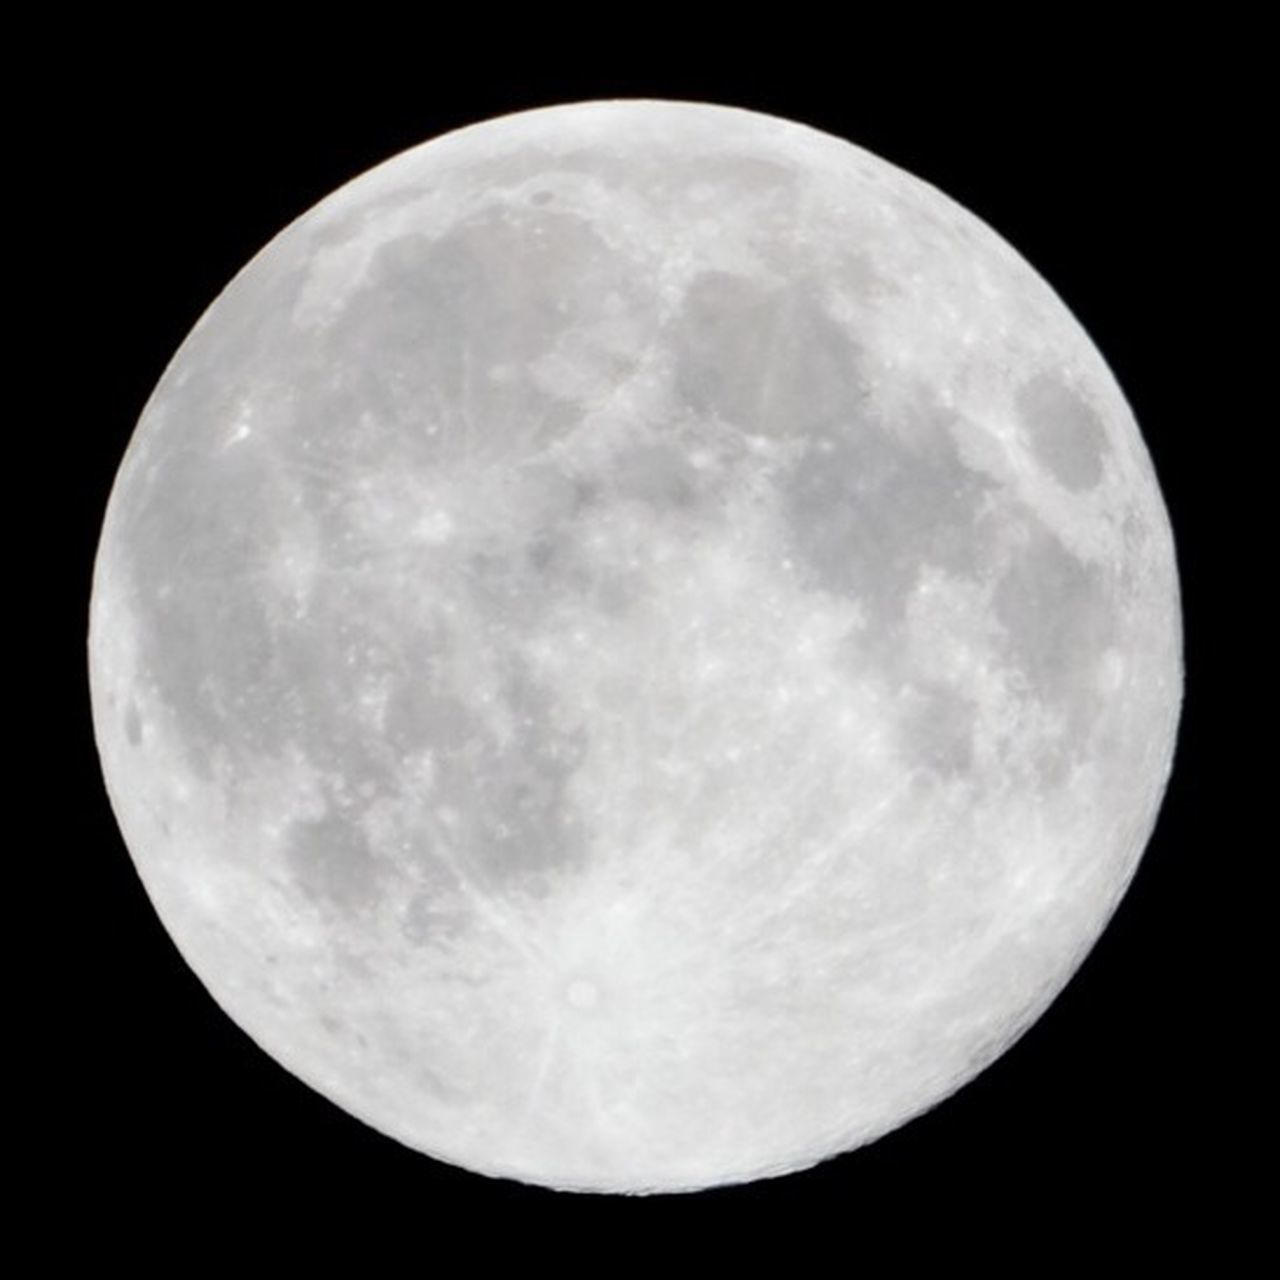 moon, full moon, night, moon surface, astronomy, planetary moon, circle, beauty in nature, sky, nature, space, moonlight, tranquil scene, no people, scenics, tranquility, outdoors, space exploration, close-up, half moon, satellite view